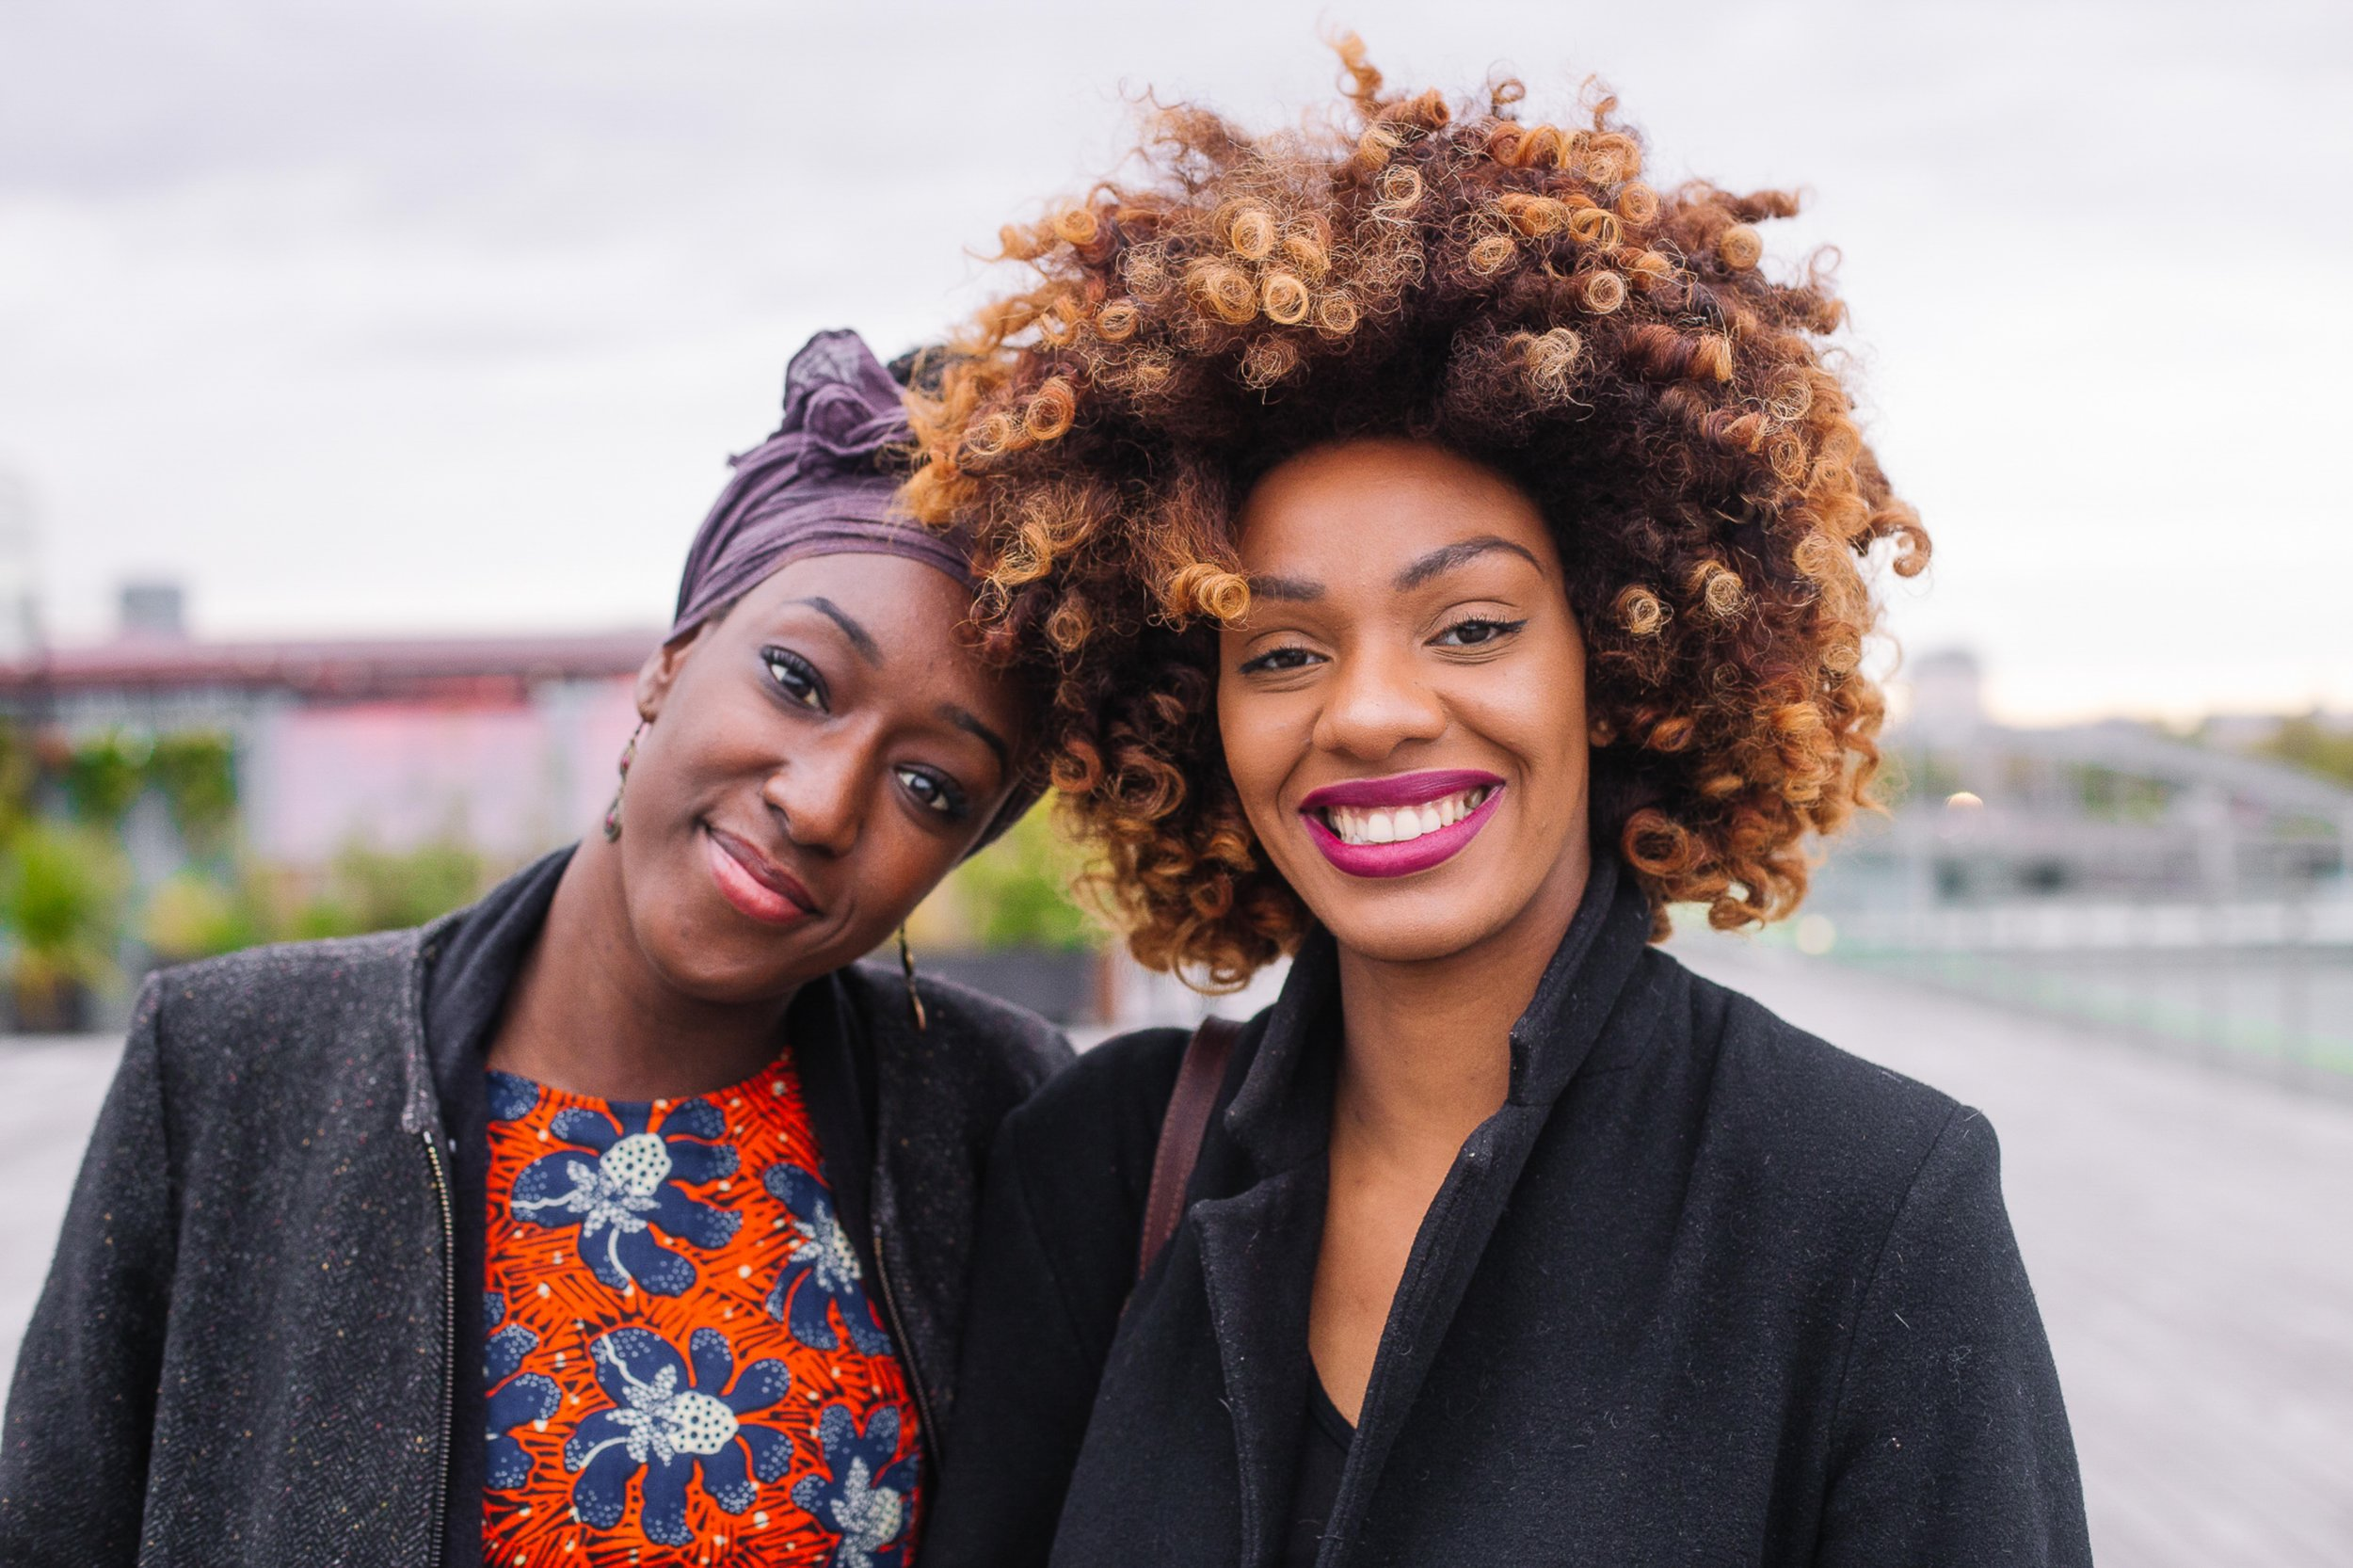 adults-afro-attractive-1857596.jpg